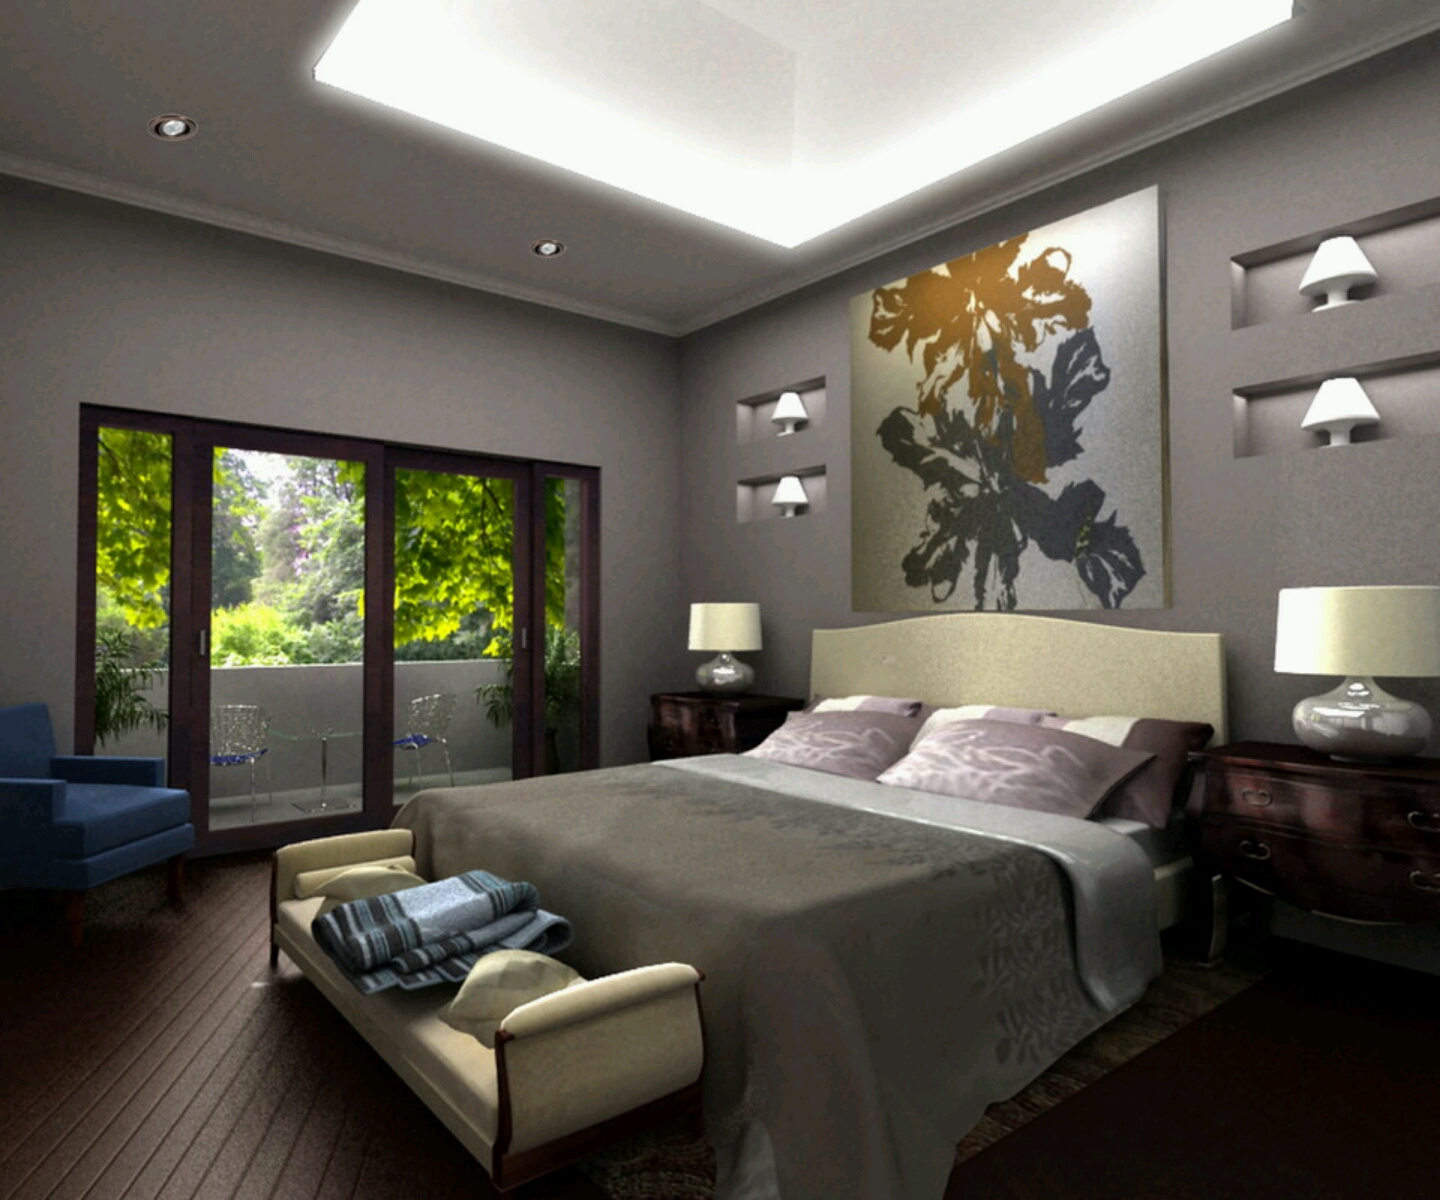 Modern bed designs beautiful bedrooms designs ideas for Interior design ideas bedroom